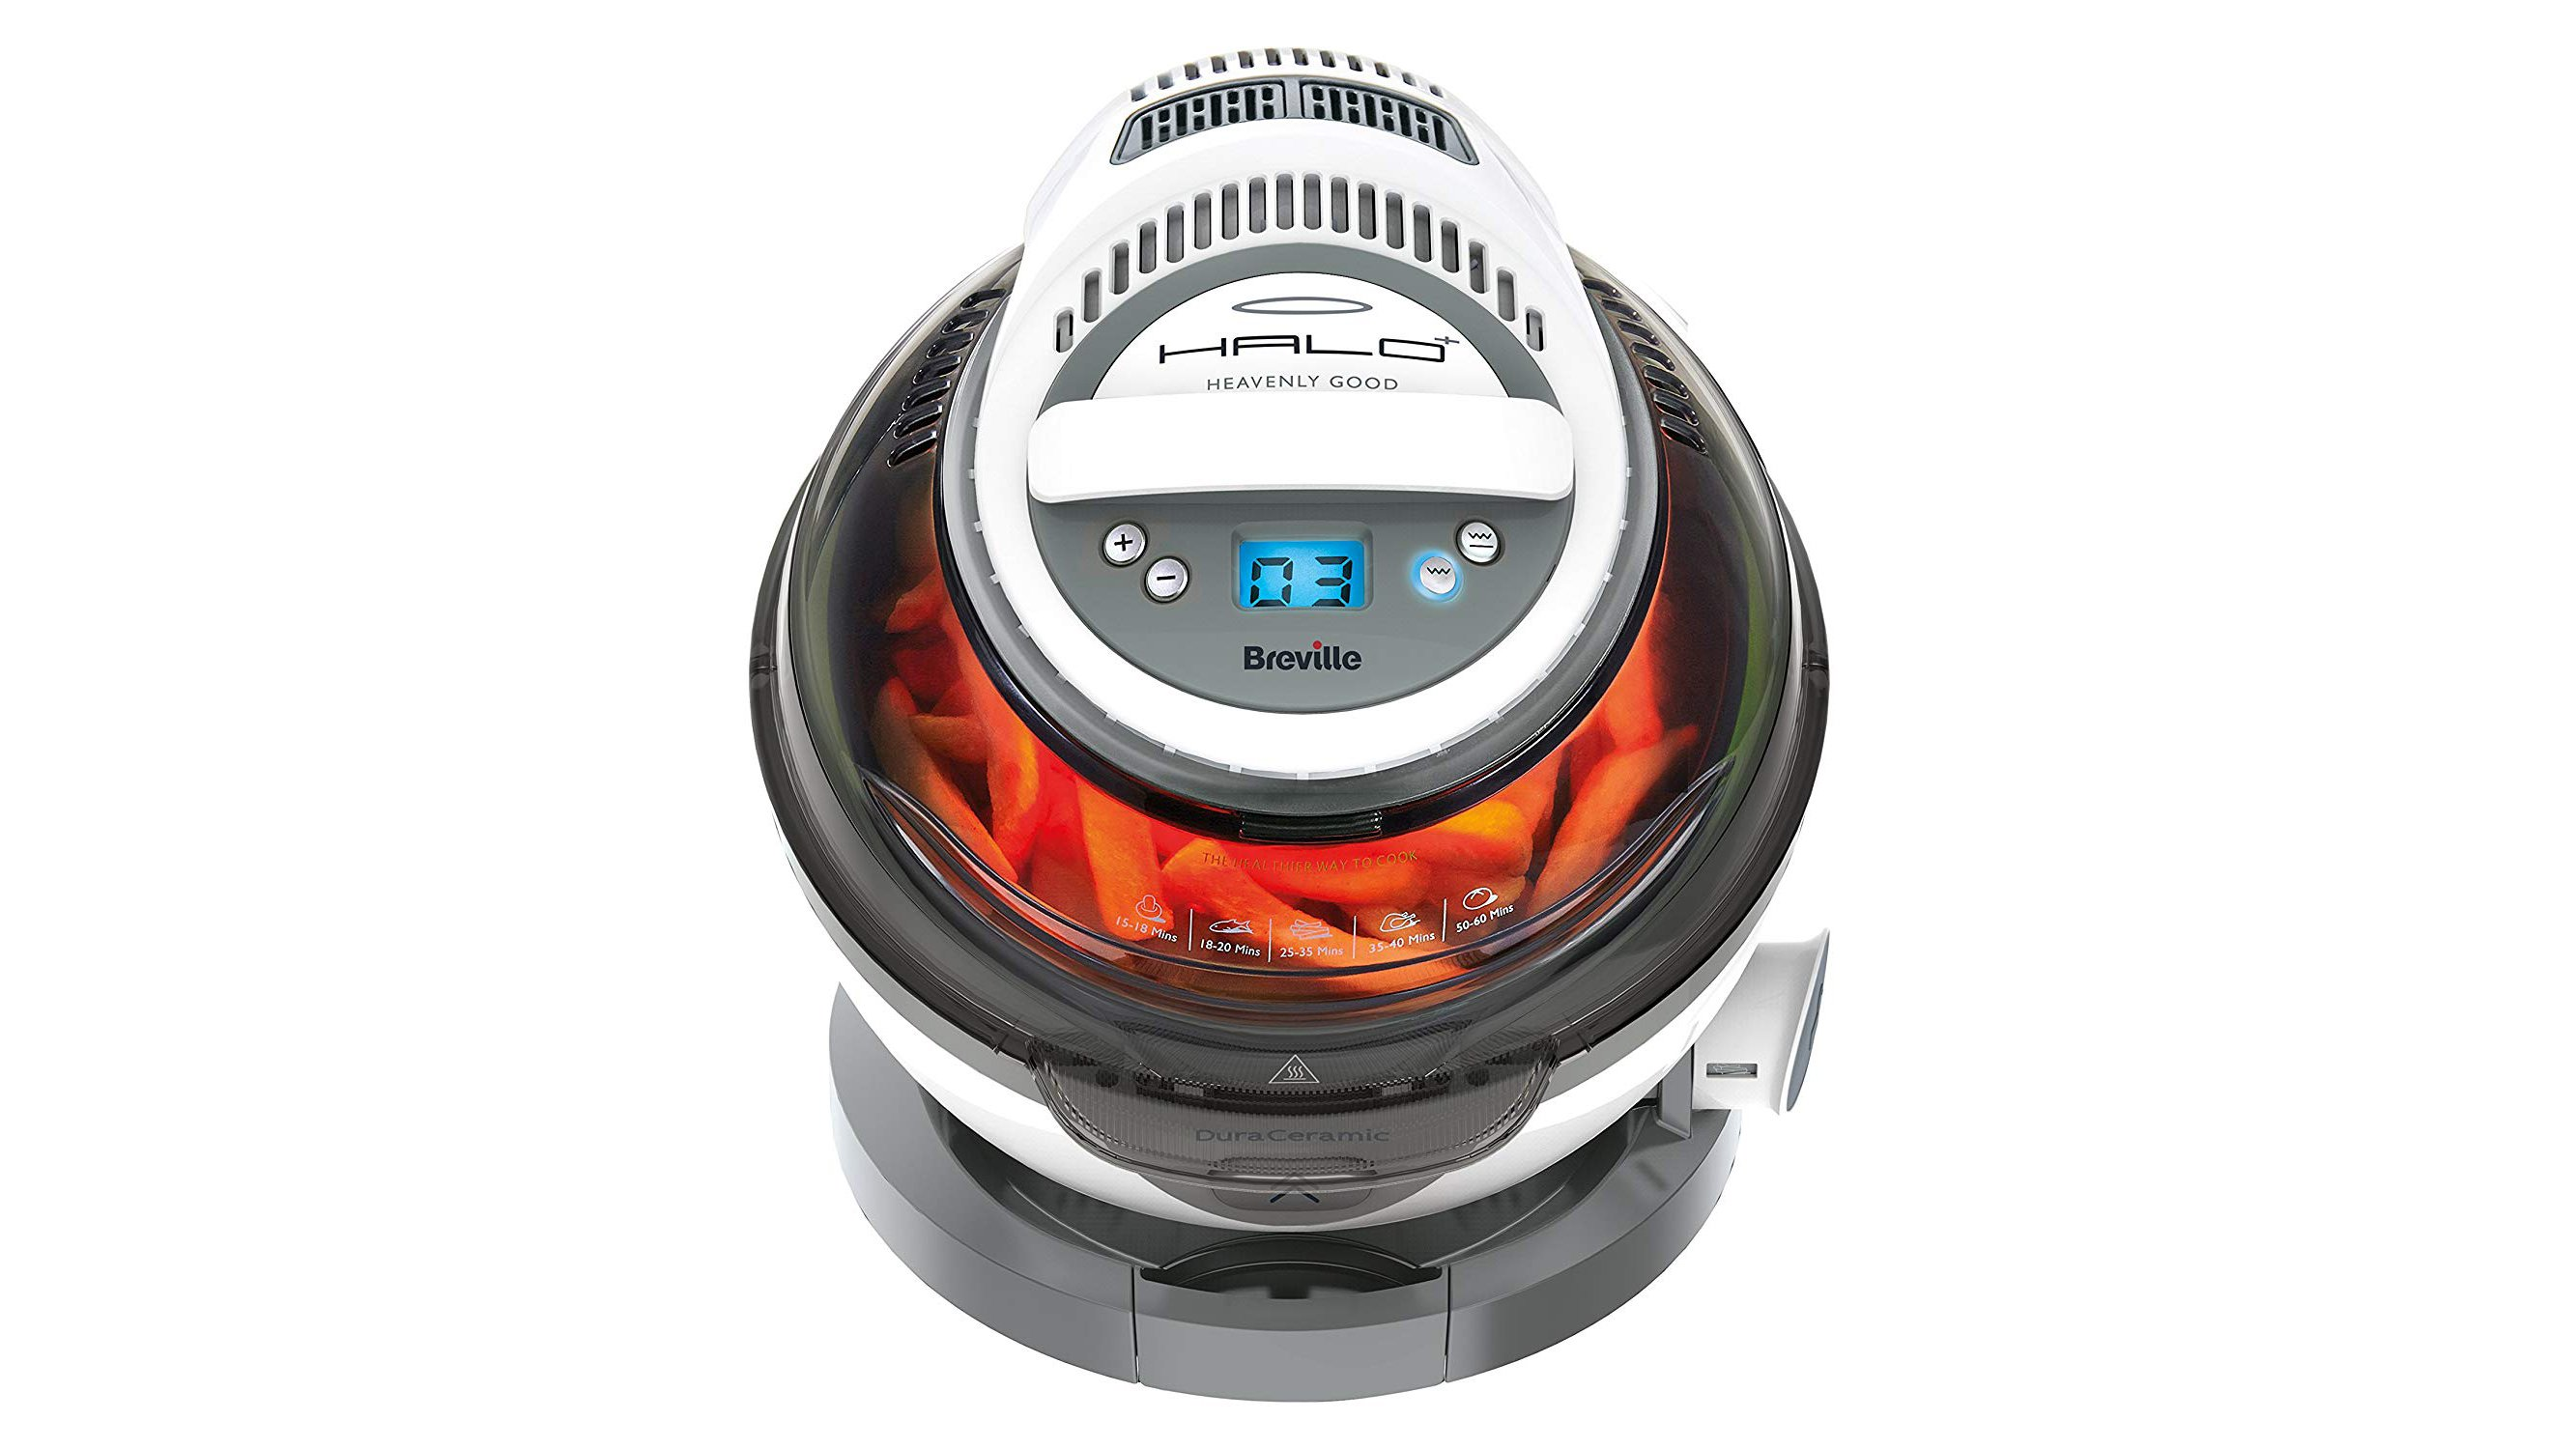 Best air fryers: The best air fryers from Breville, Lakeland